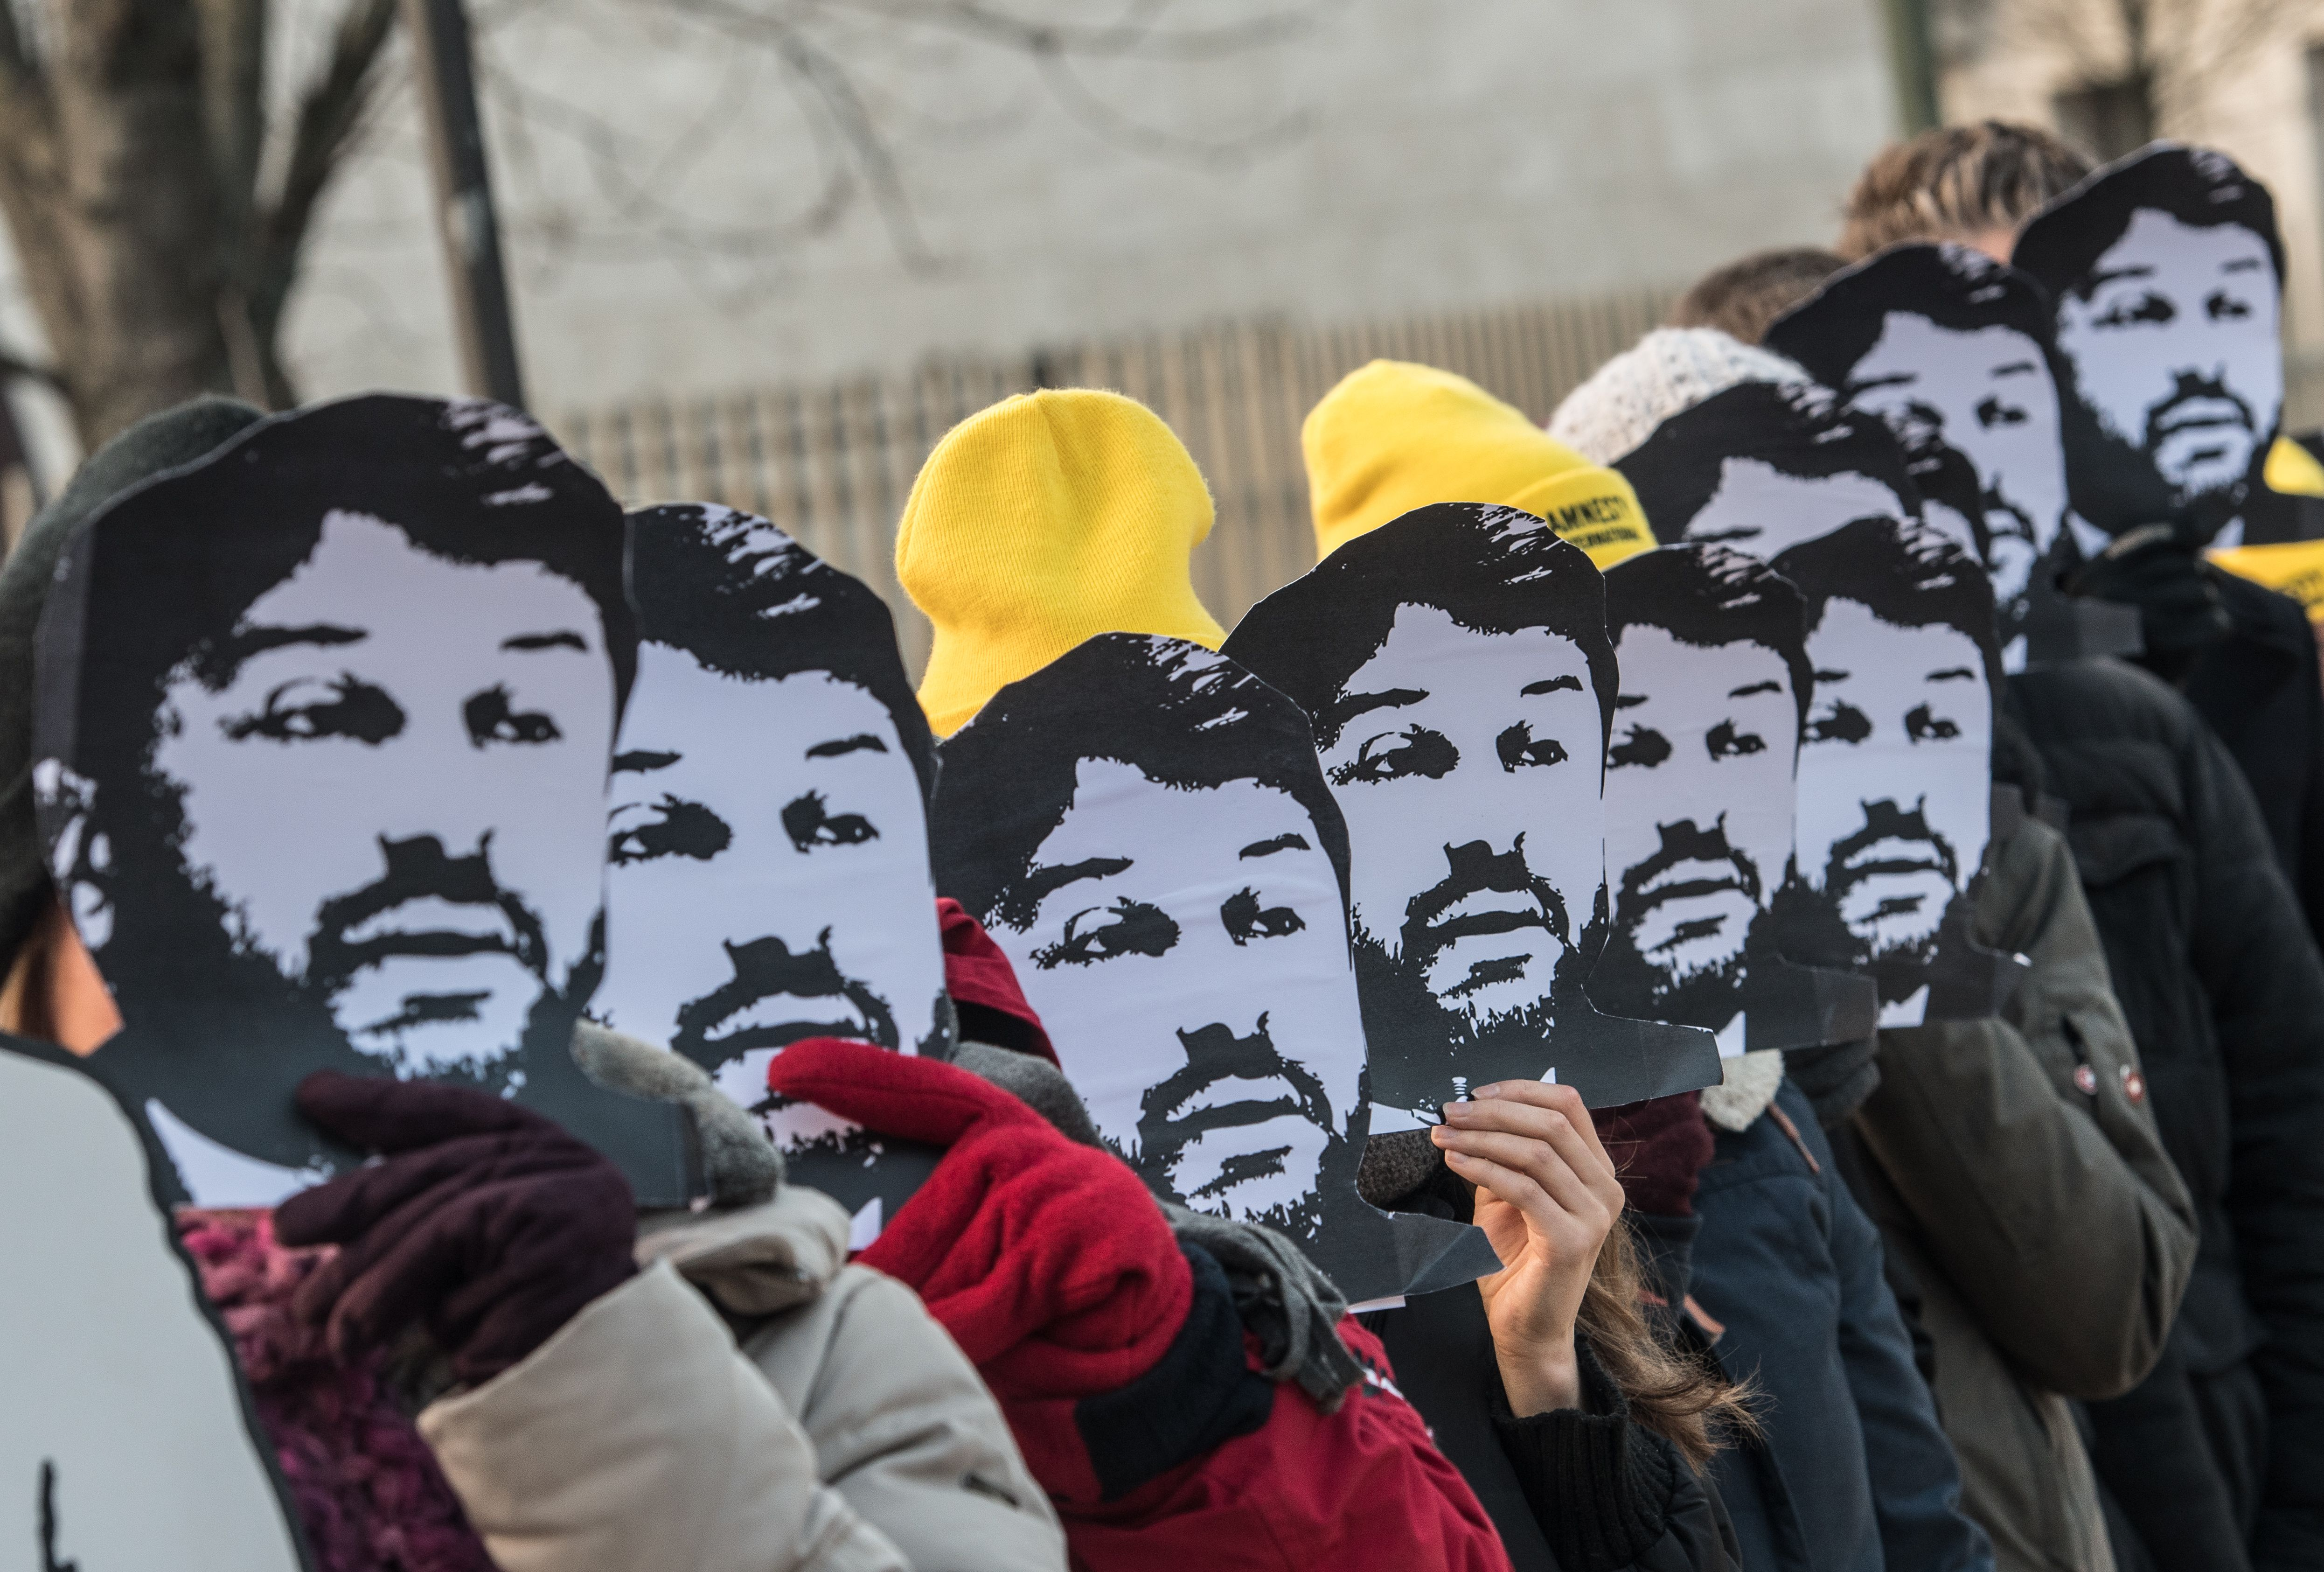 Activists of the human rights organization Amnesty International hold masks of Turkish civil rights activist Taner Kilic in front of their faces as they demonstrate on February 7, 2018 in front of the Turkish embassy in Berlin.